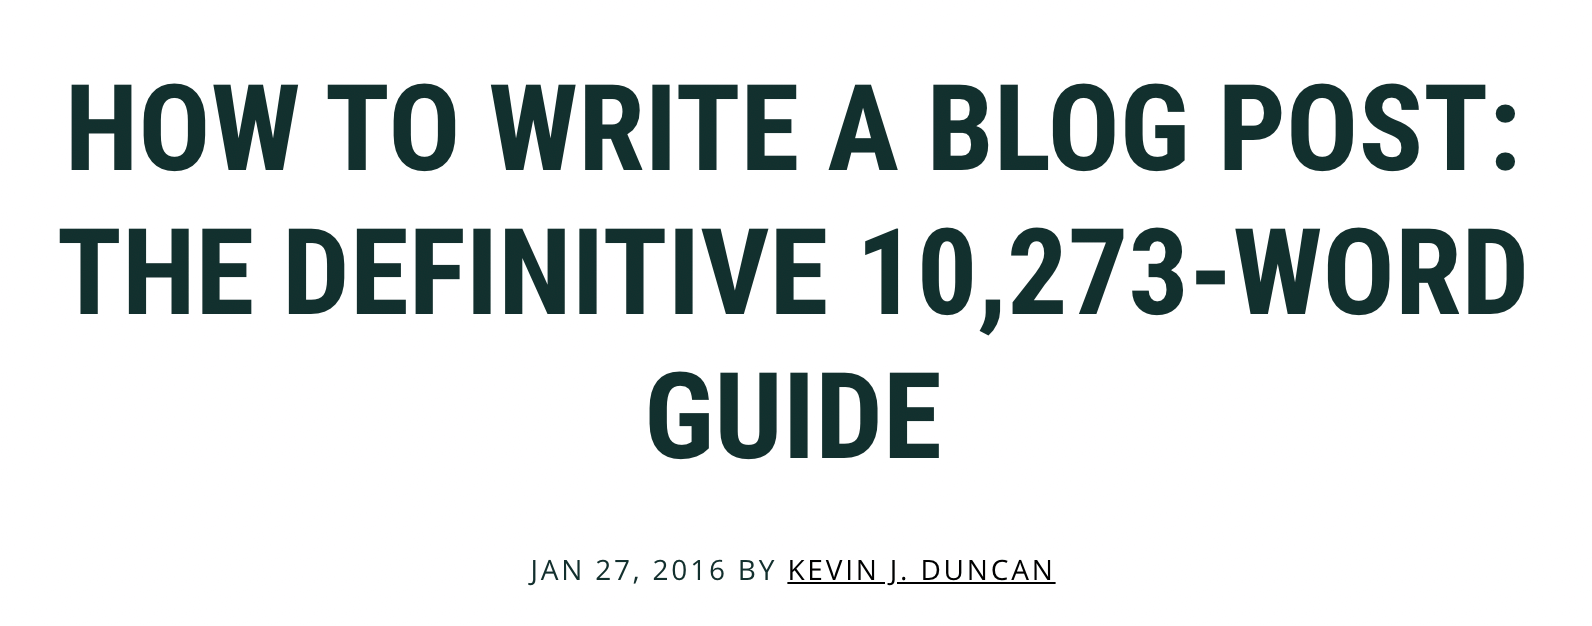 How To Write A Blog Post: The Definitive 10,273-Word Guide